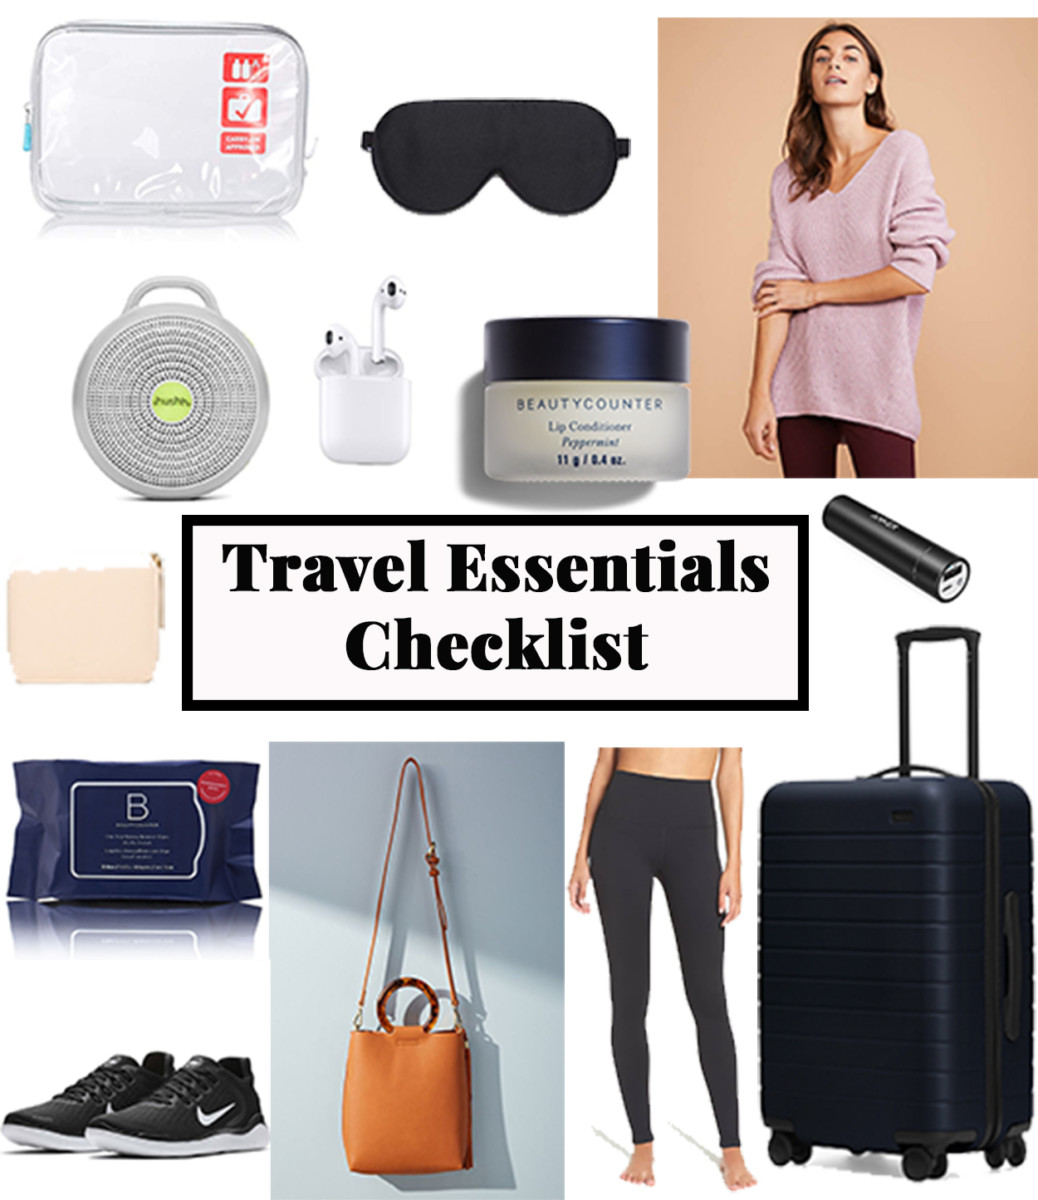 Travel Essentials Checklist | Cobalt Chronicles | Washington, DC | Style Blogger